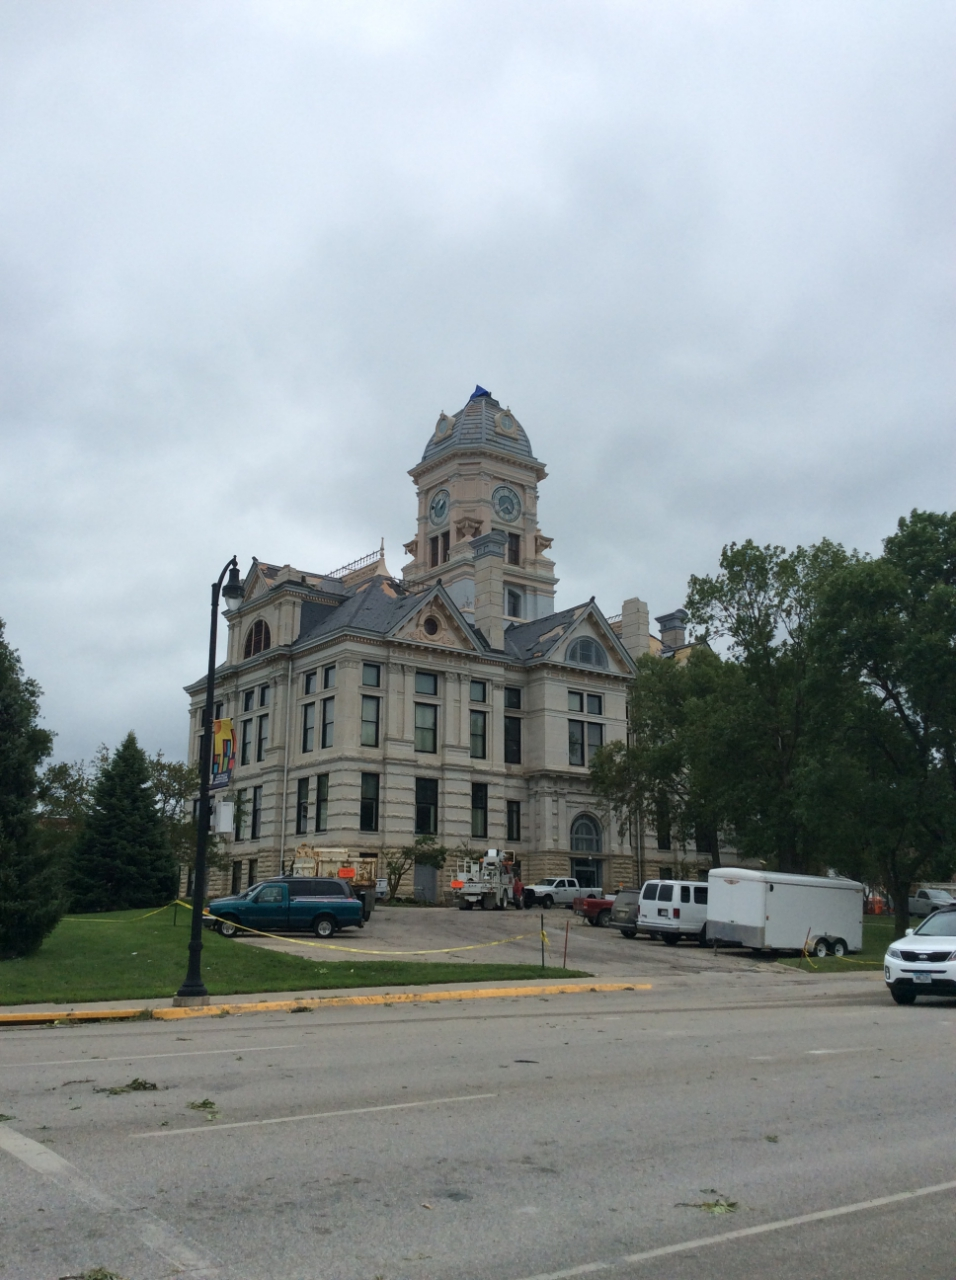 Marshall County Courthouse in Marshalltown missing its clock tower